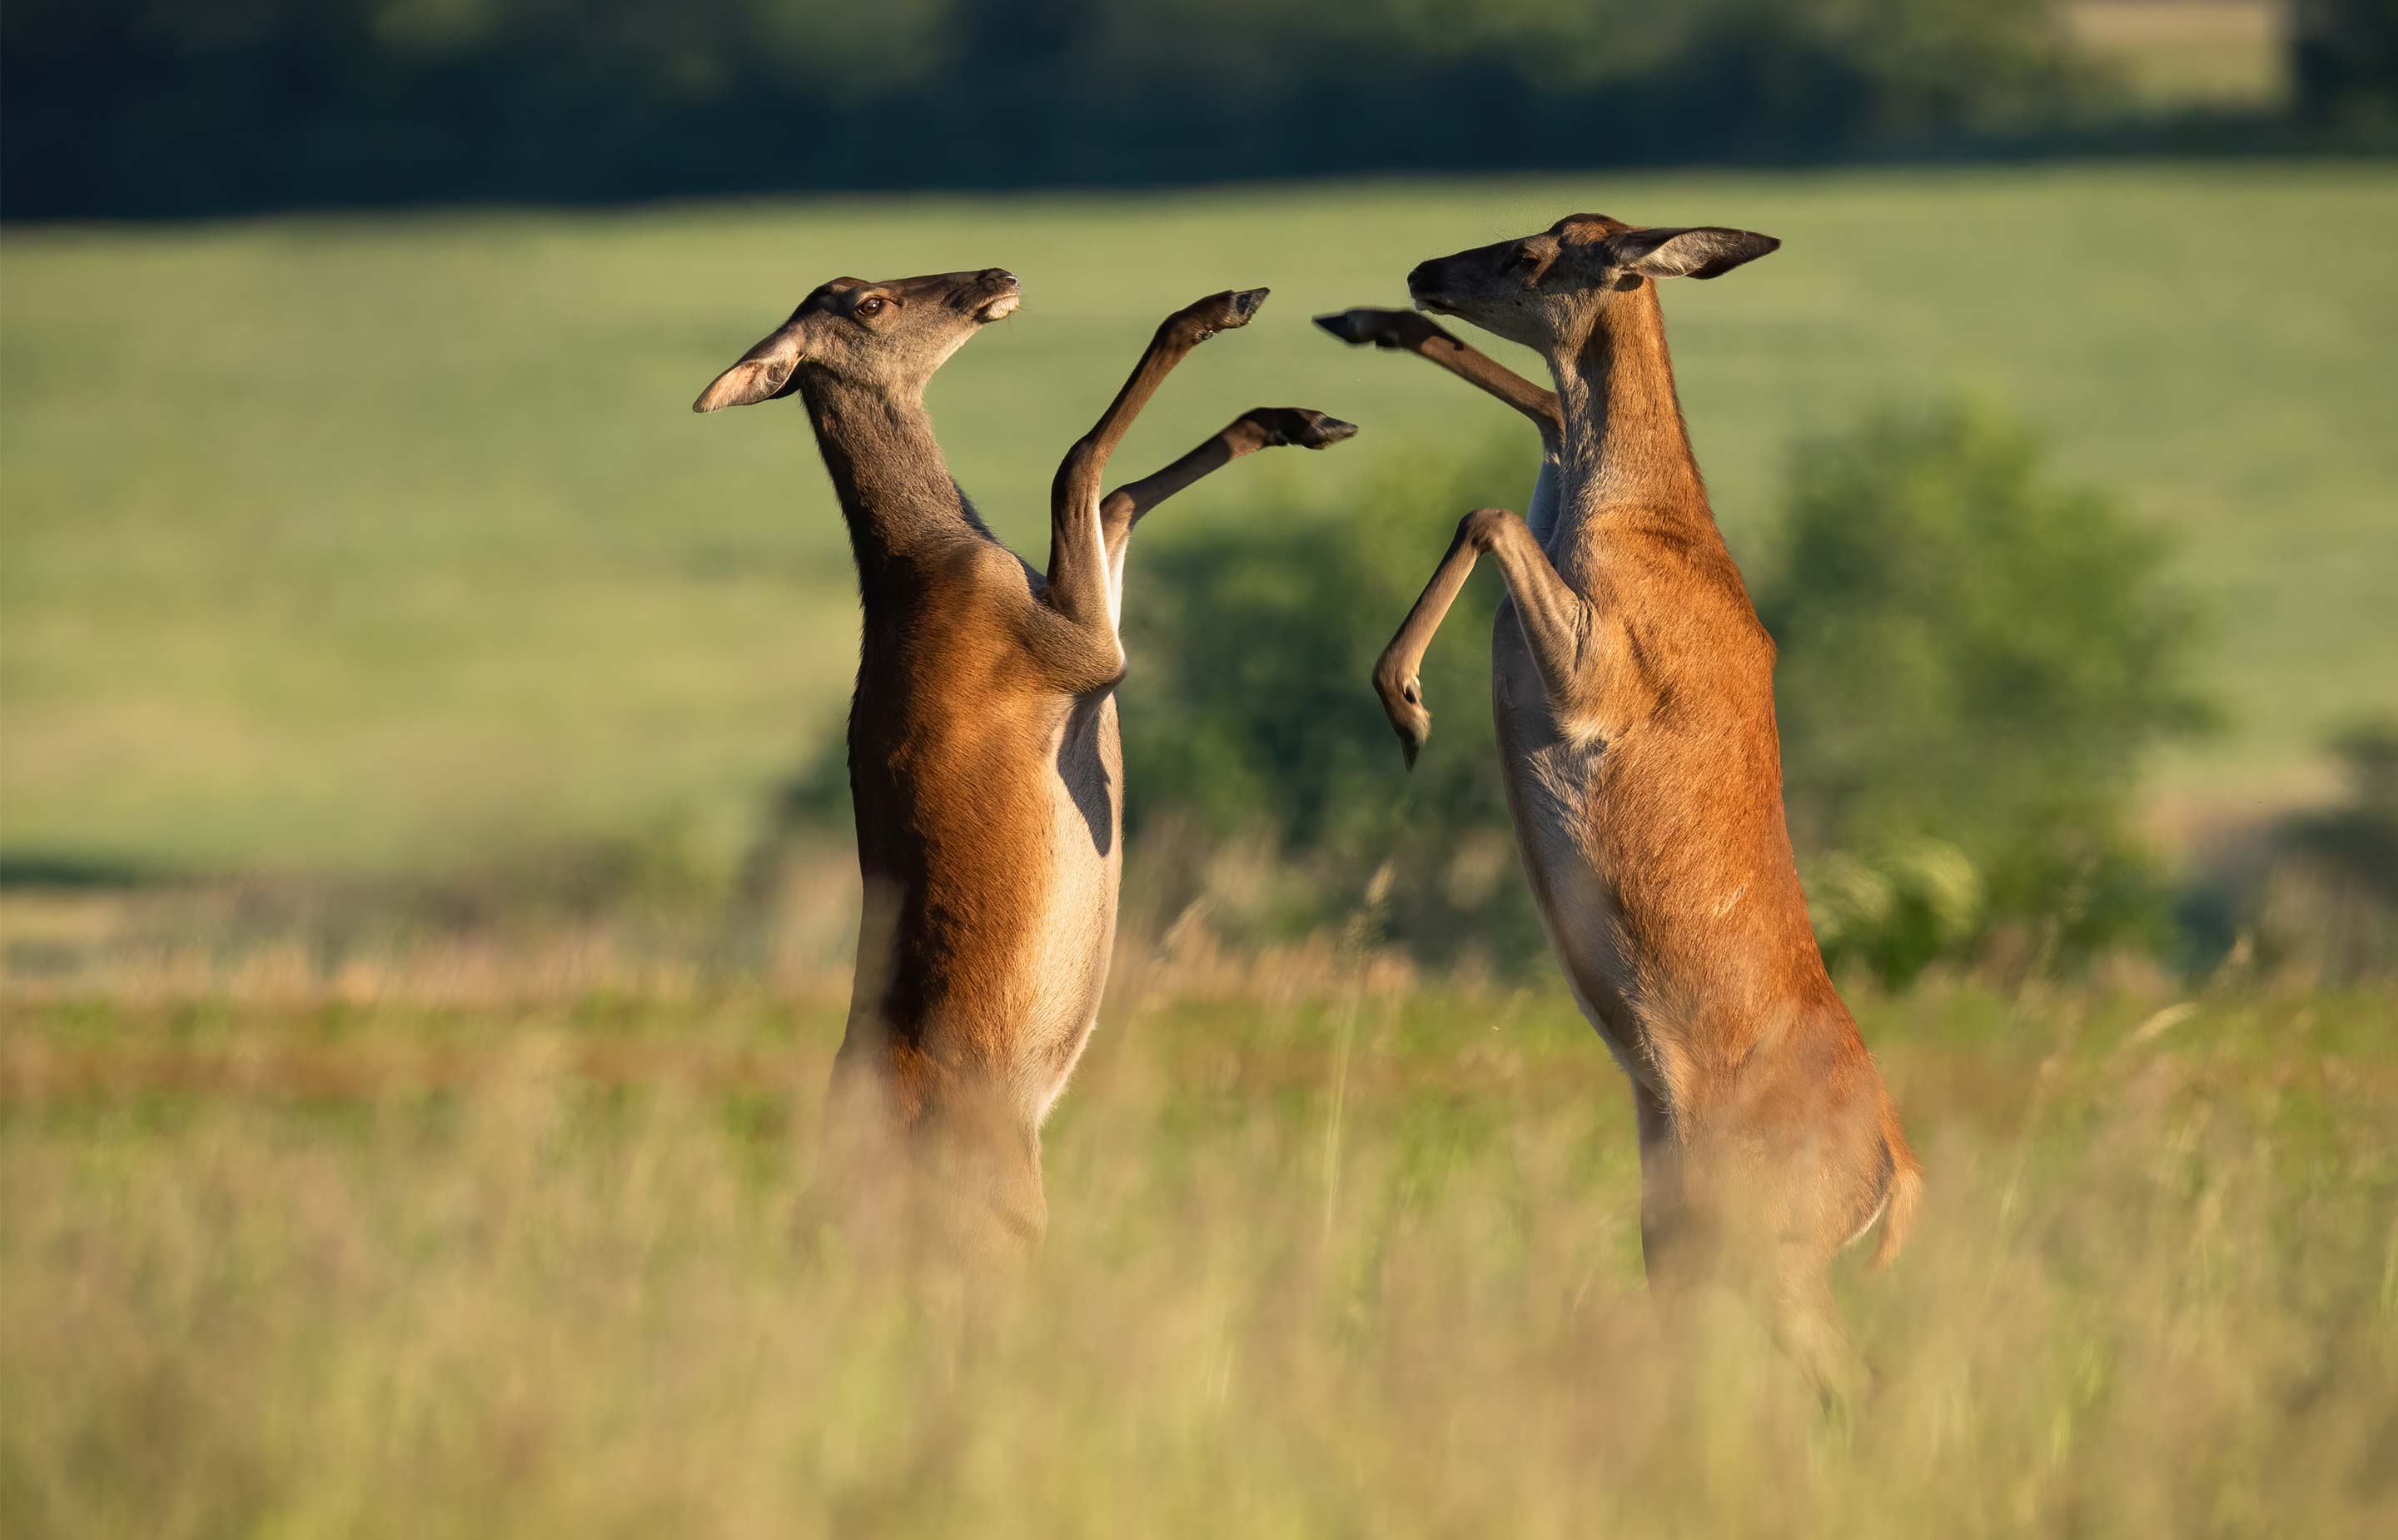 Photograph of two female red deer, fighting with their front hooves.